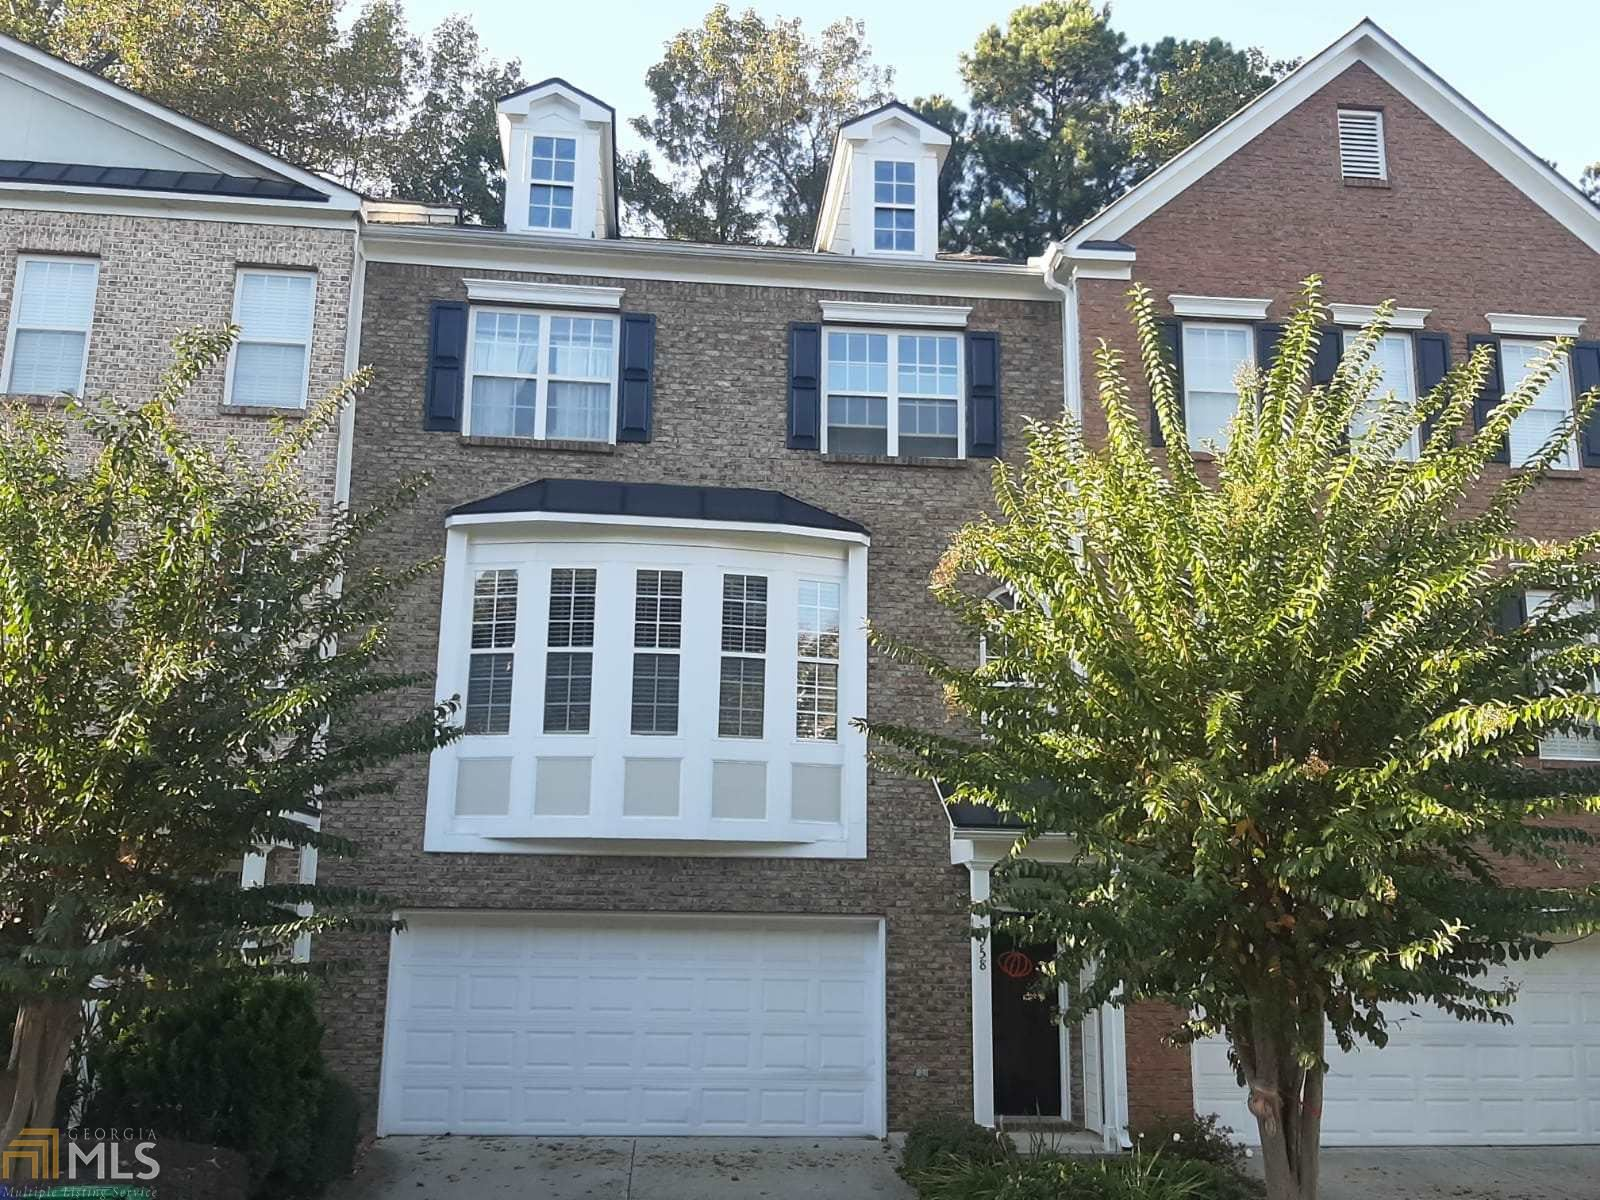 2958 Wintercrest Dr, Atlanta, GA 30360 - MLS#: 8884981